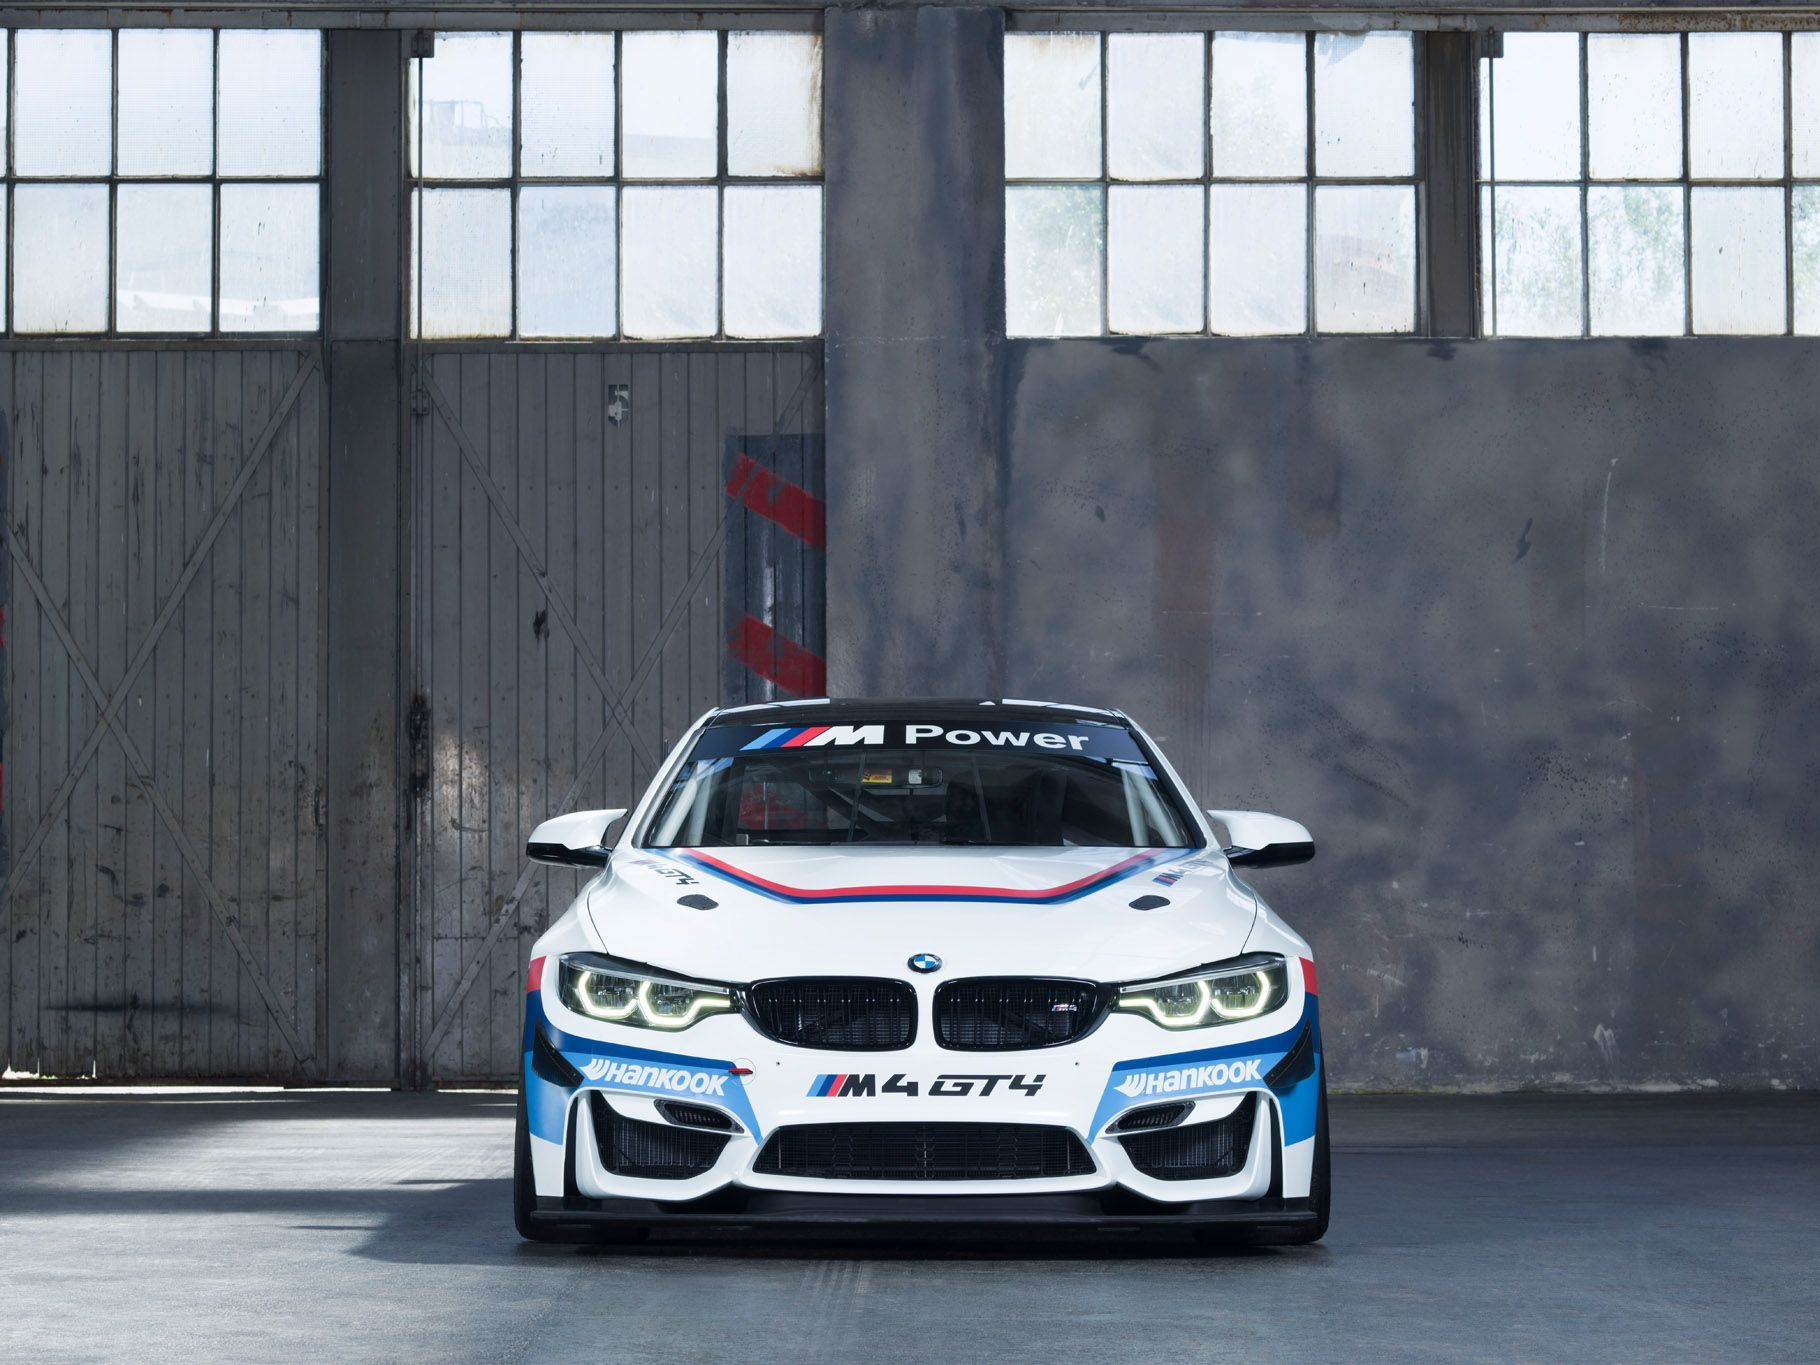 Bmw M4 Gt4 Is The Newest Entry To The Popular Race Class Http Www